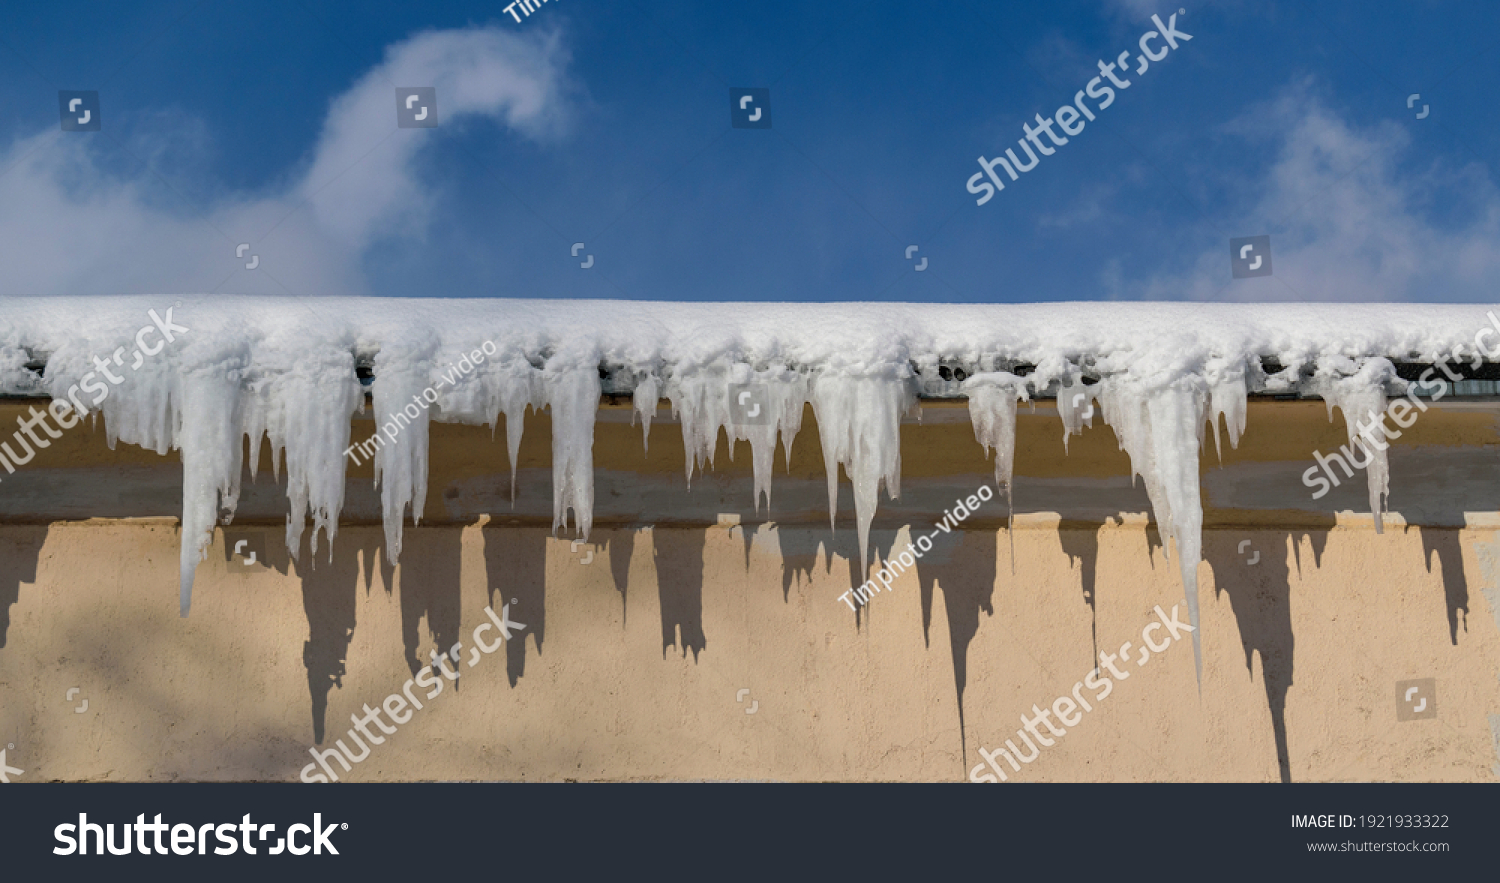 stock-photo-snow-and-ice-icicles-on-the-